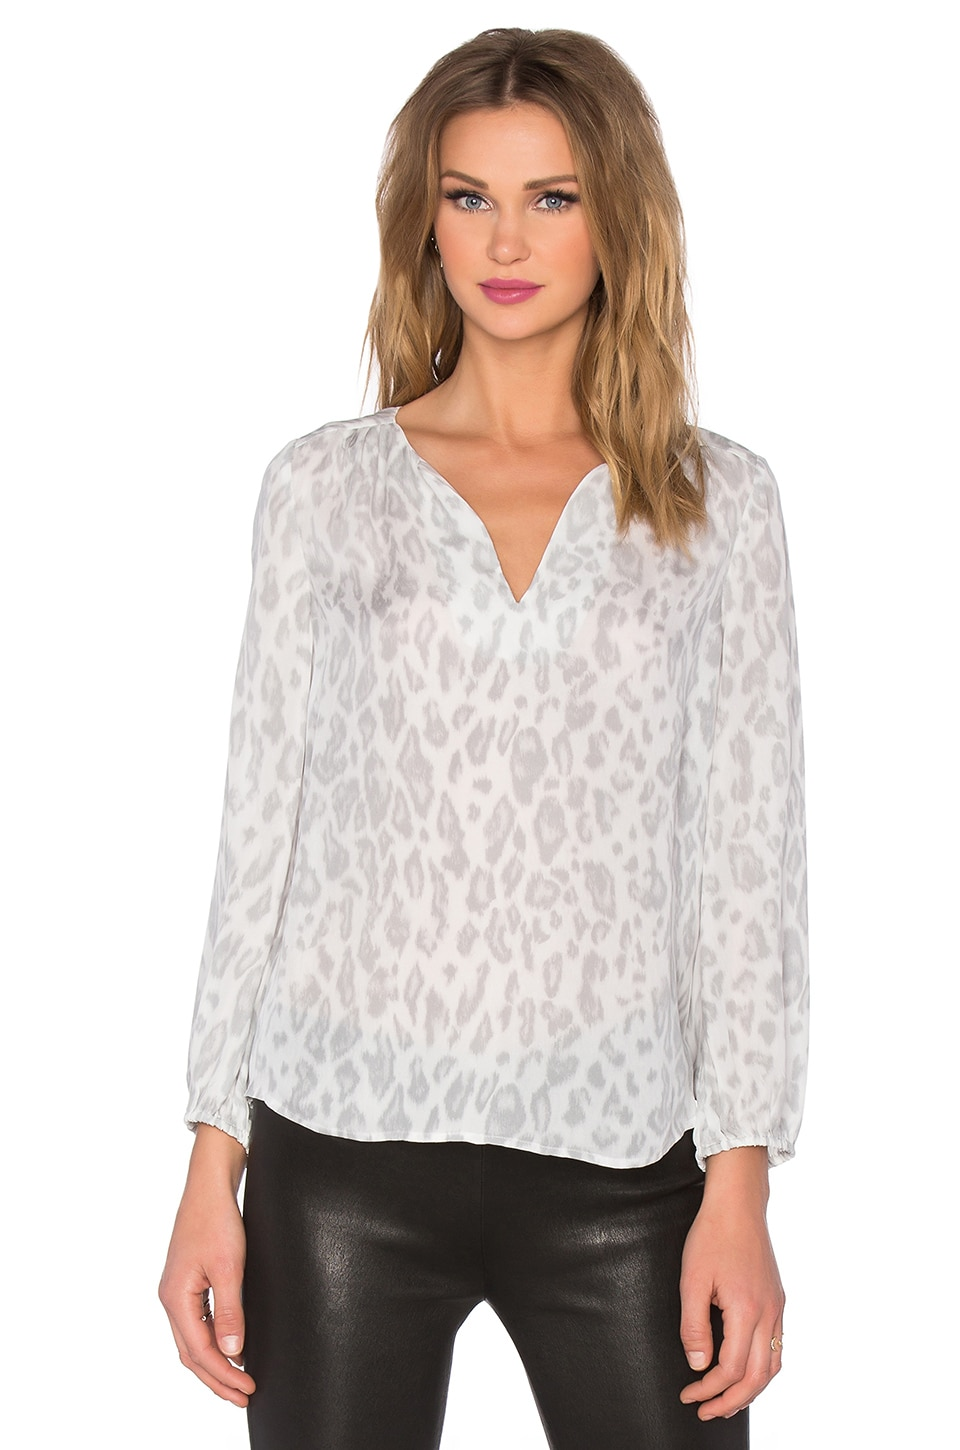 Joie Odelette B Cheetah Printed Blouse in Porcelain